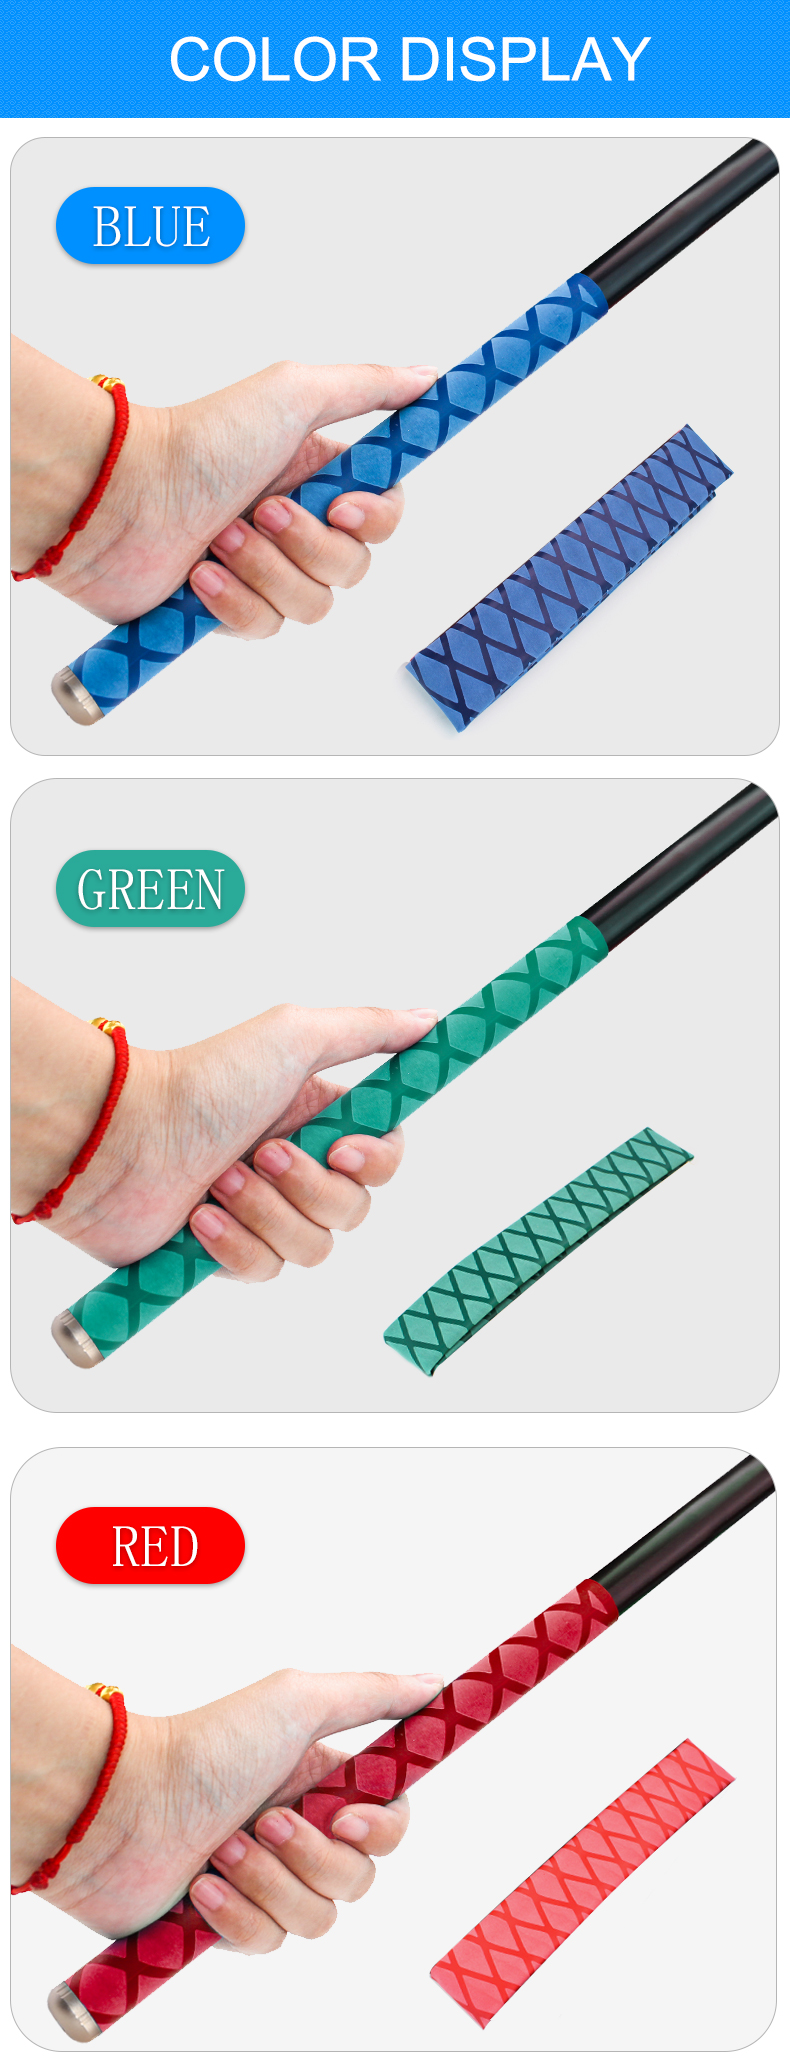 0 2M Non slip Heat Shrink Wrap Tubing Fishing Rod DIY 5 colors Handle Insulation Waterproof Racket Handle Grip in Cable Sleeves from Home Improvement